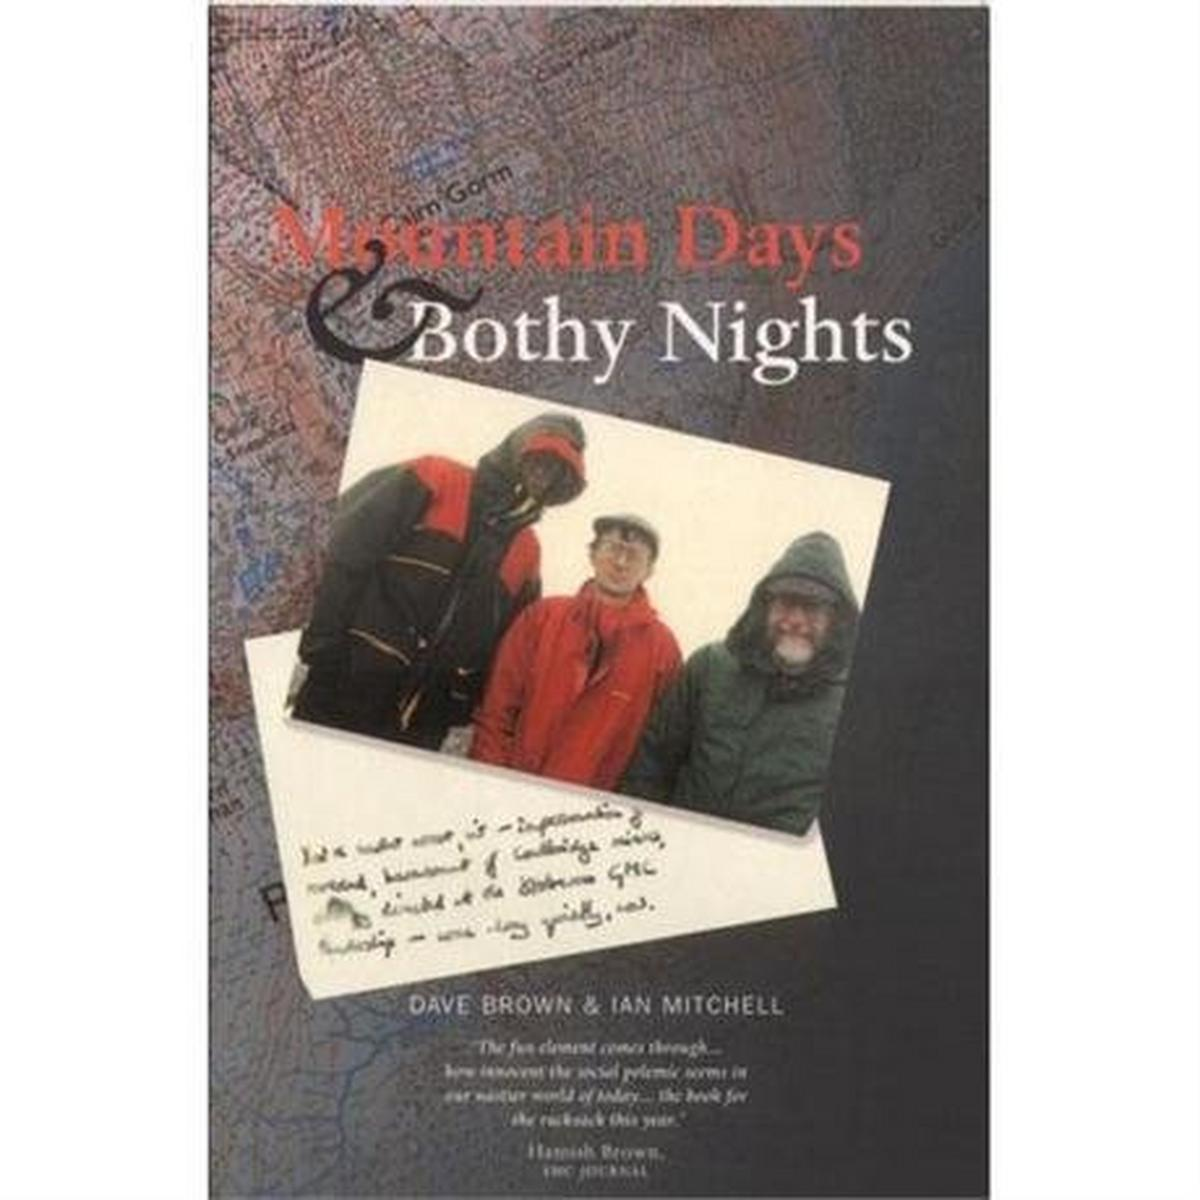 Miscellaneous Book: Mountain Days & Bothy Nights